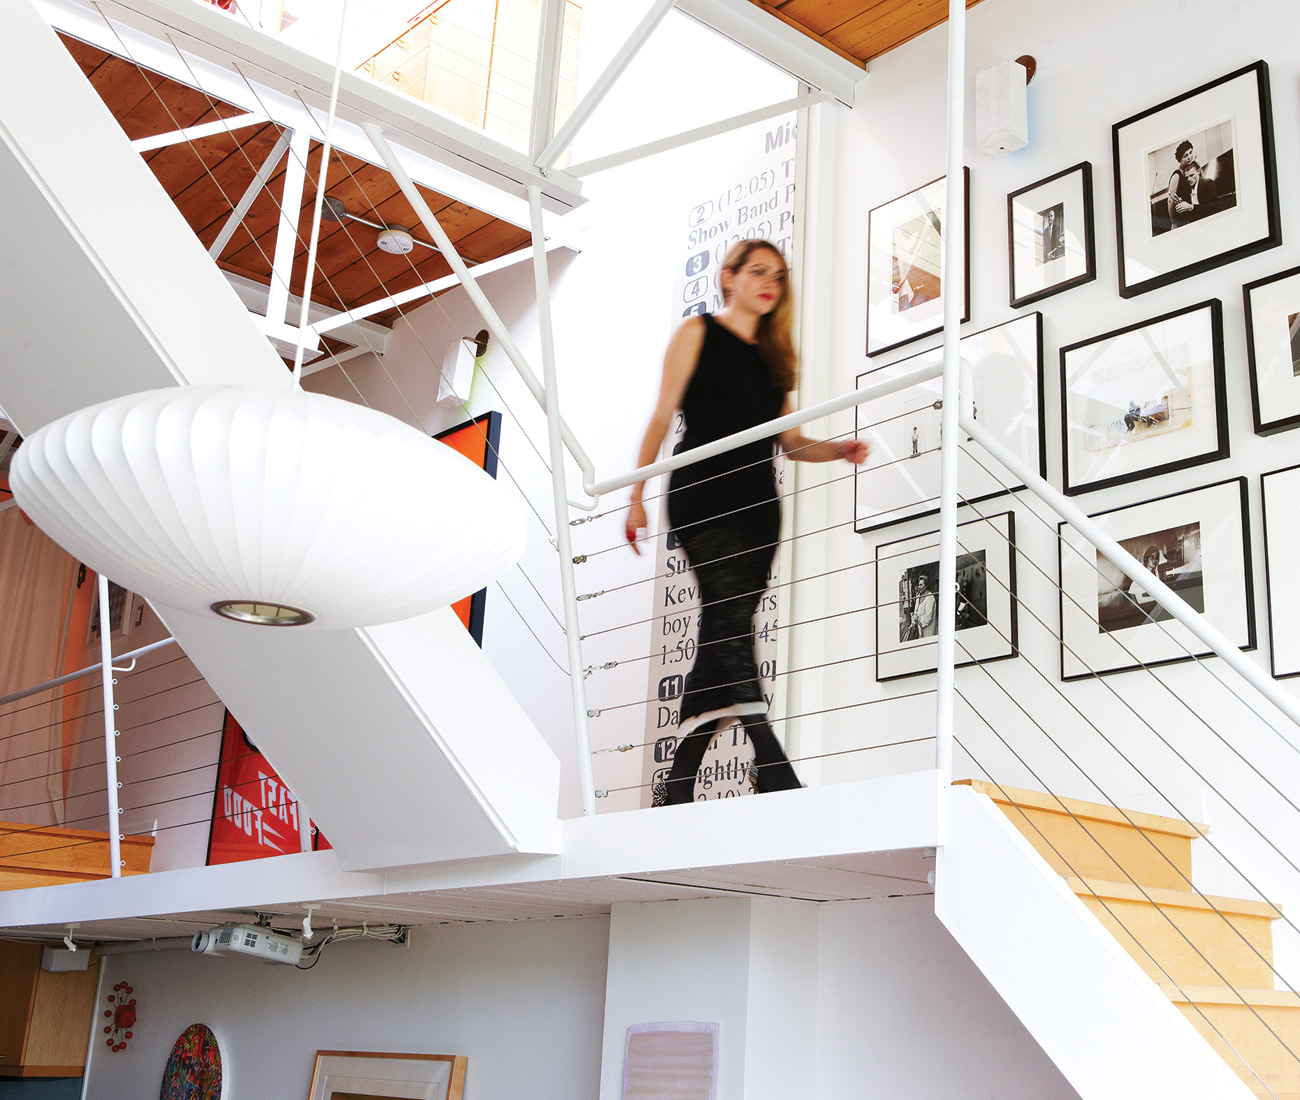 Steel beams reinforce the two upper floors and open-webbed steel joists support the stairs. Bain's collection of photos includes a portrait of Marshall McLuhan by John Reeves and a self-portrait of artist/activist Freda Guttman.